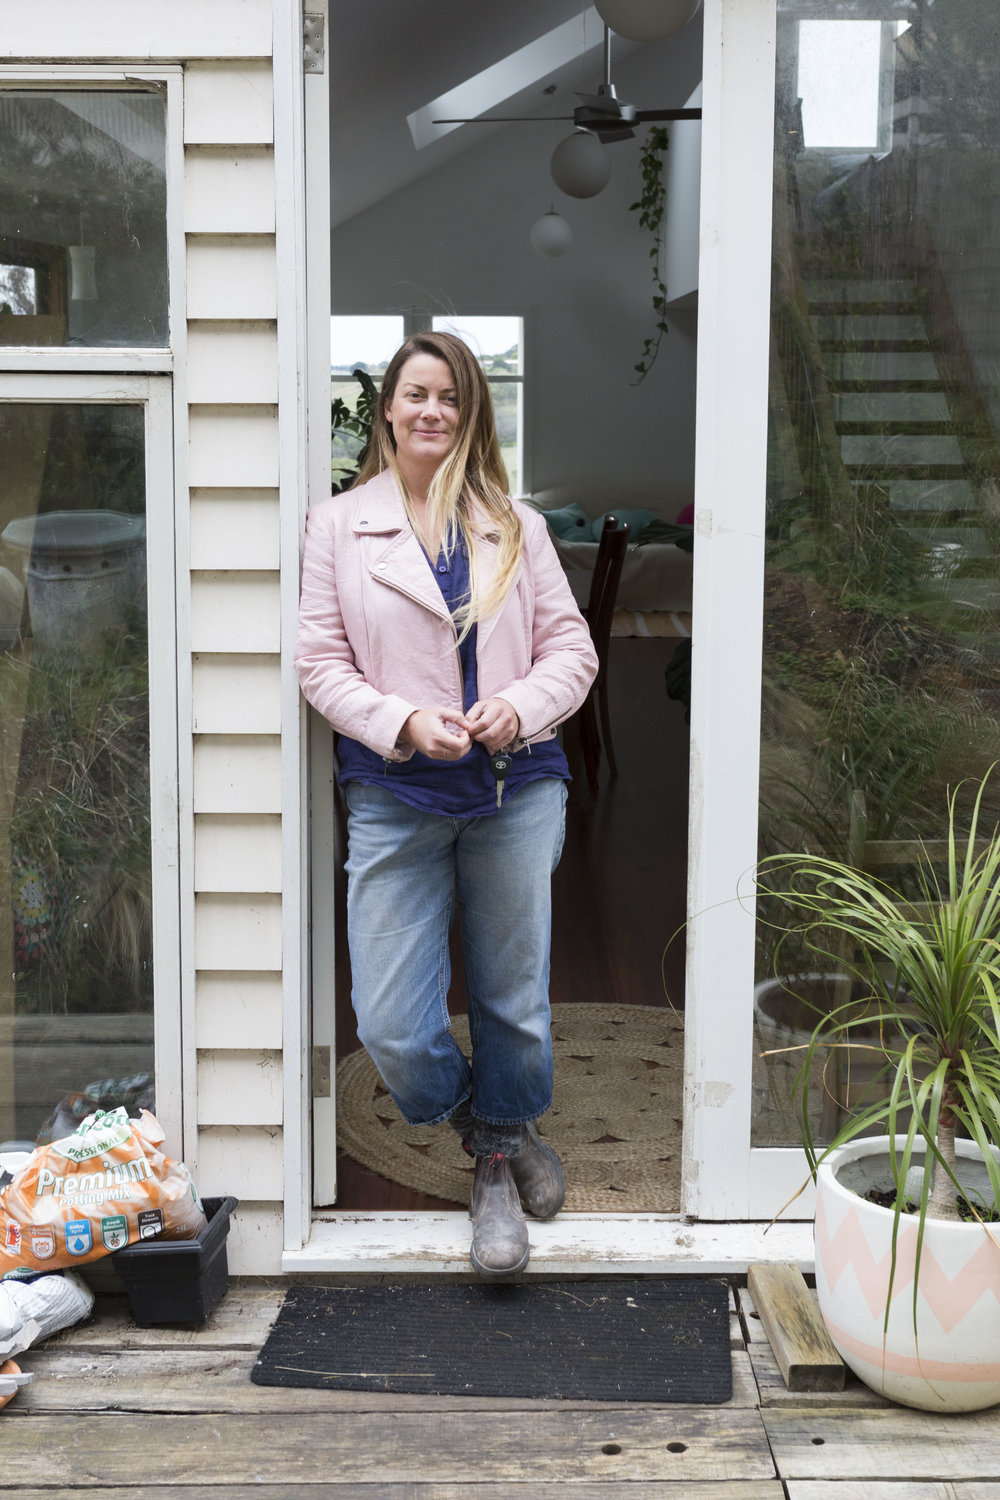 Ceramicist Chela Edmunds of Takeawei for Rented Space